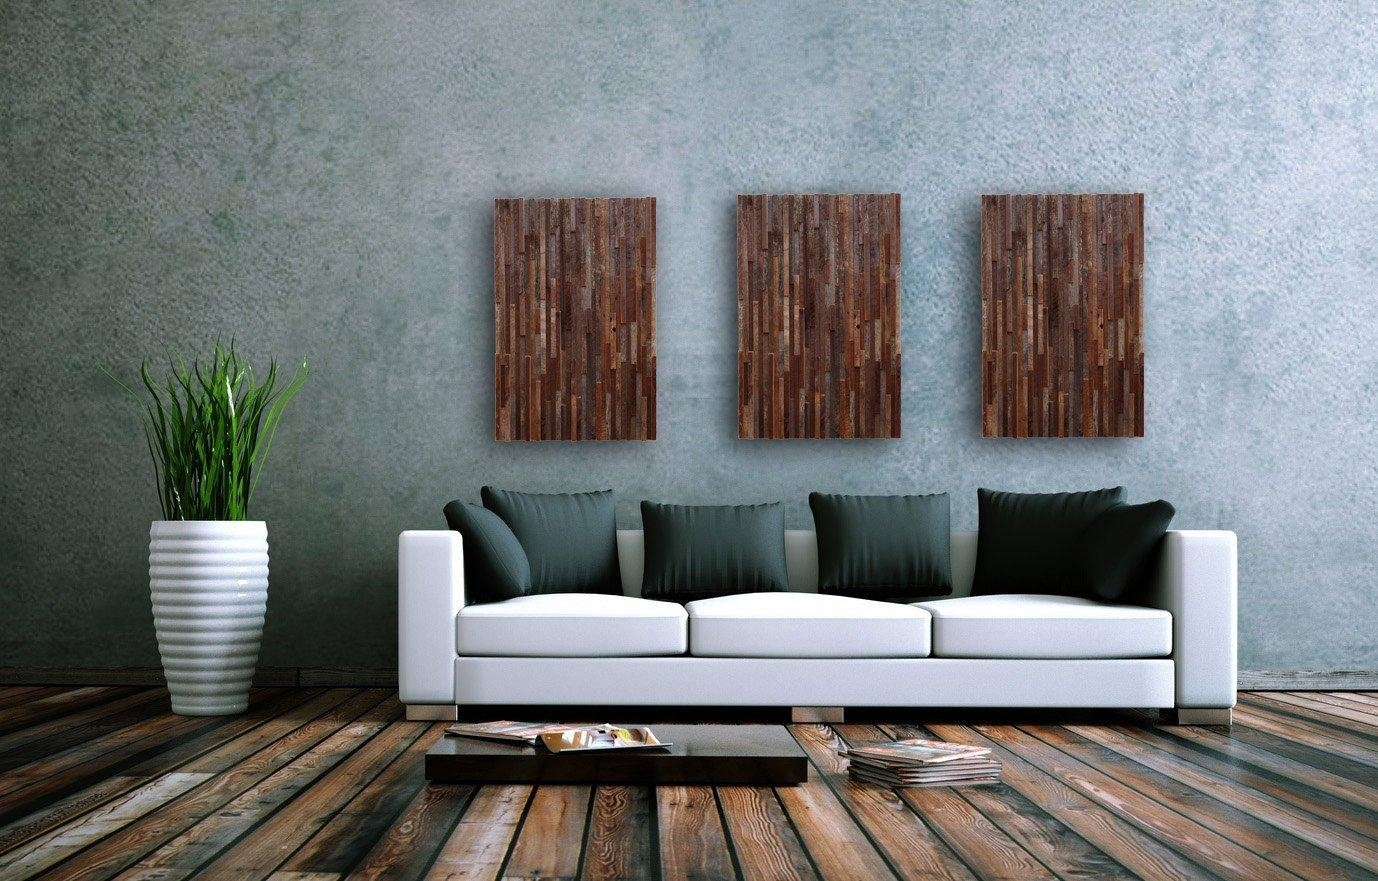 Outstanding Reclaimed Wood Wall Art – Style Motivation Within Wood Wall Art (View 16 of 20)